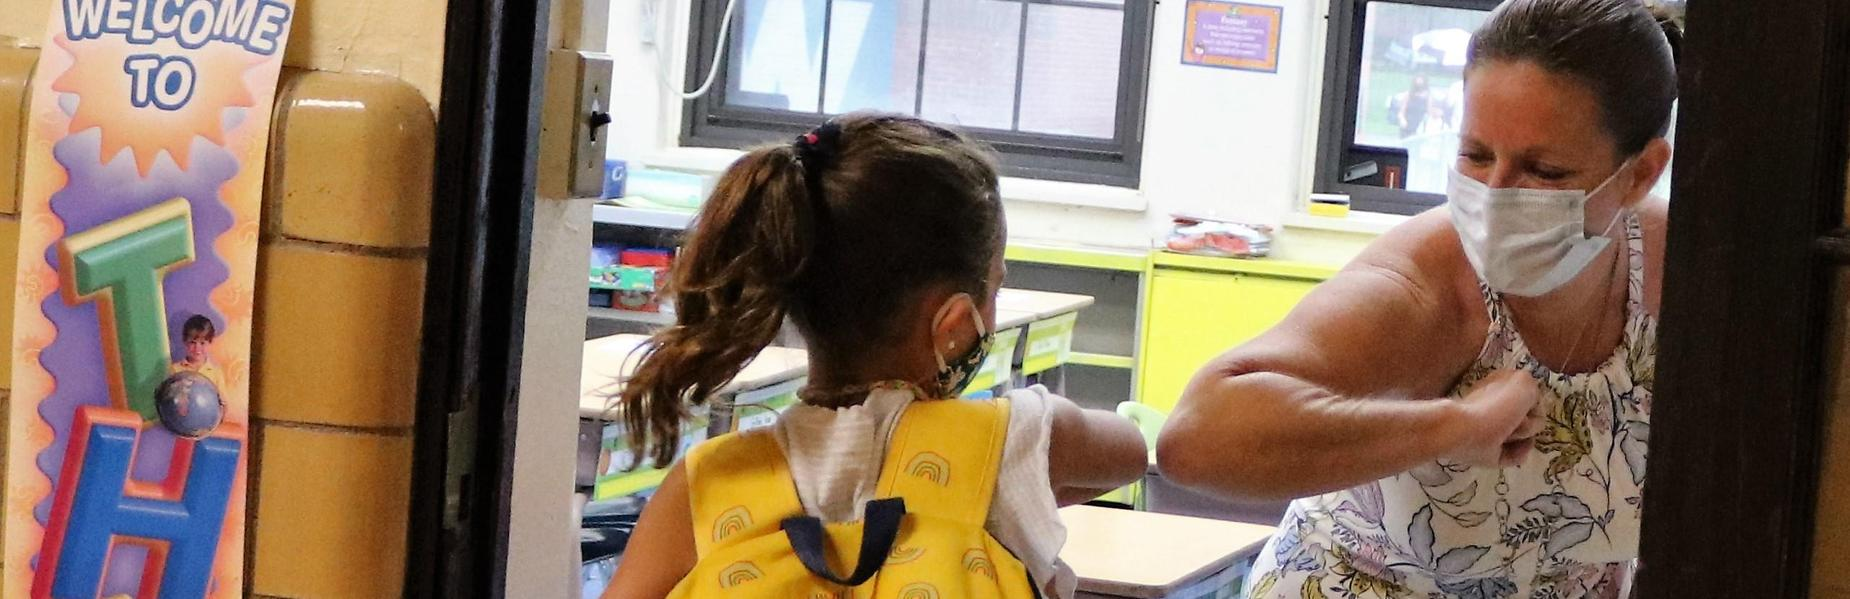 Photo of teacher and student elbow bumping on first day of school while wearing masks.